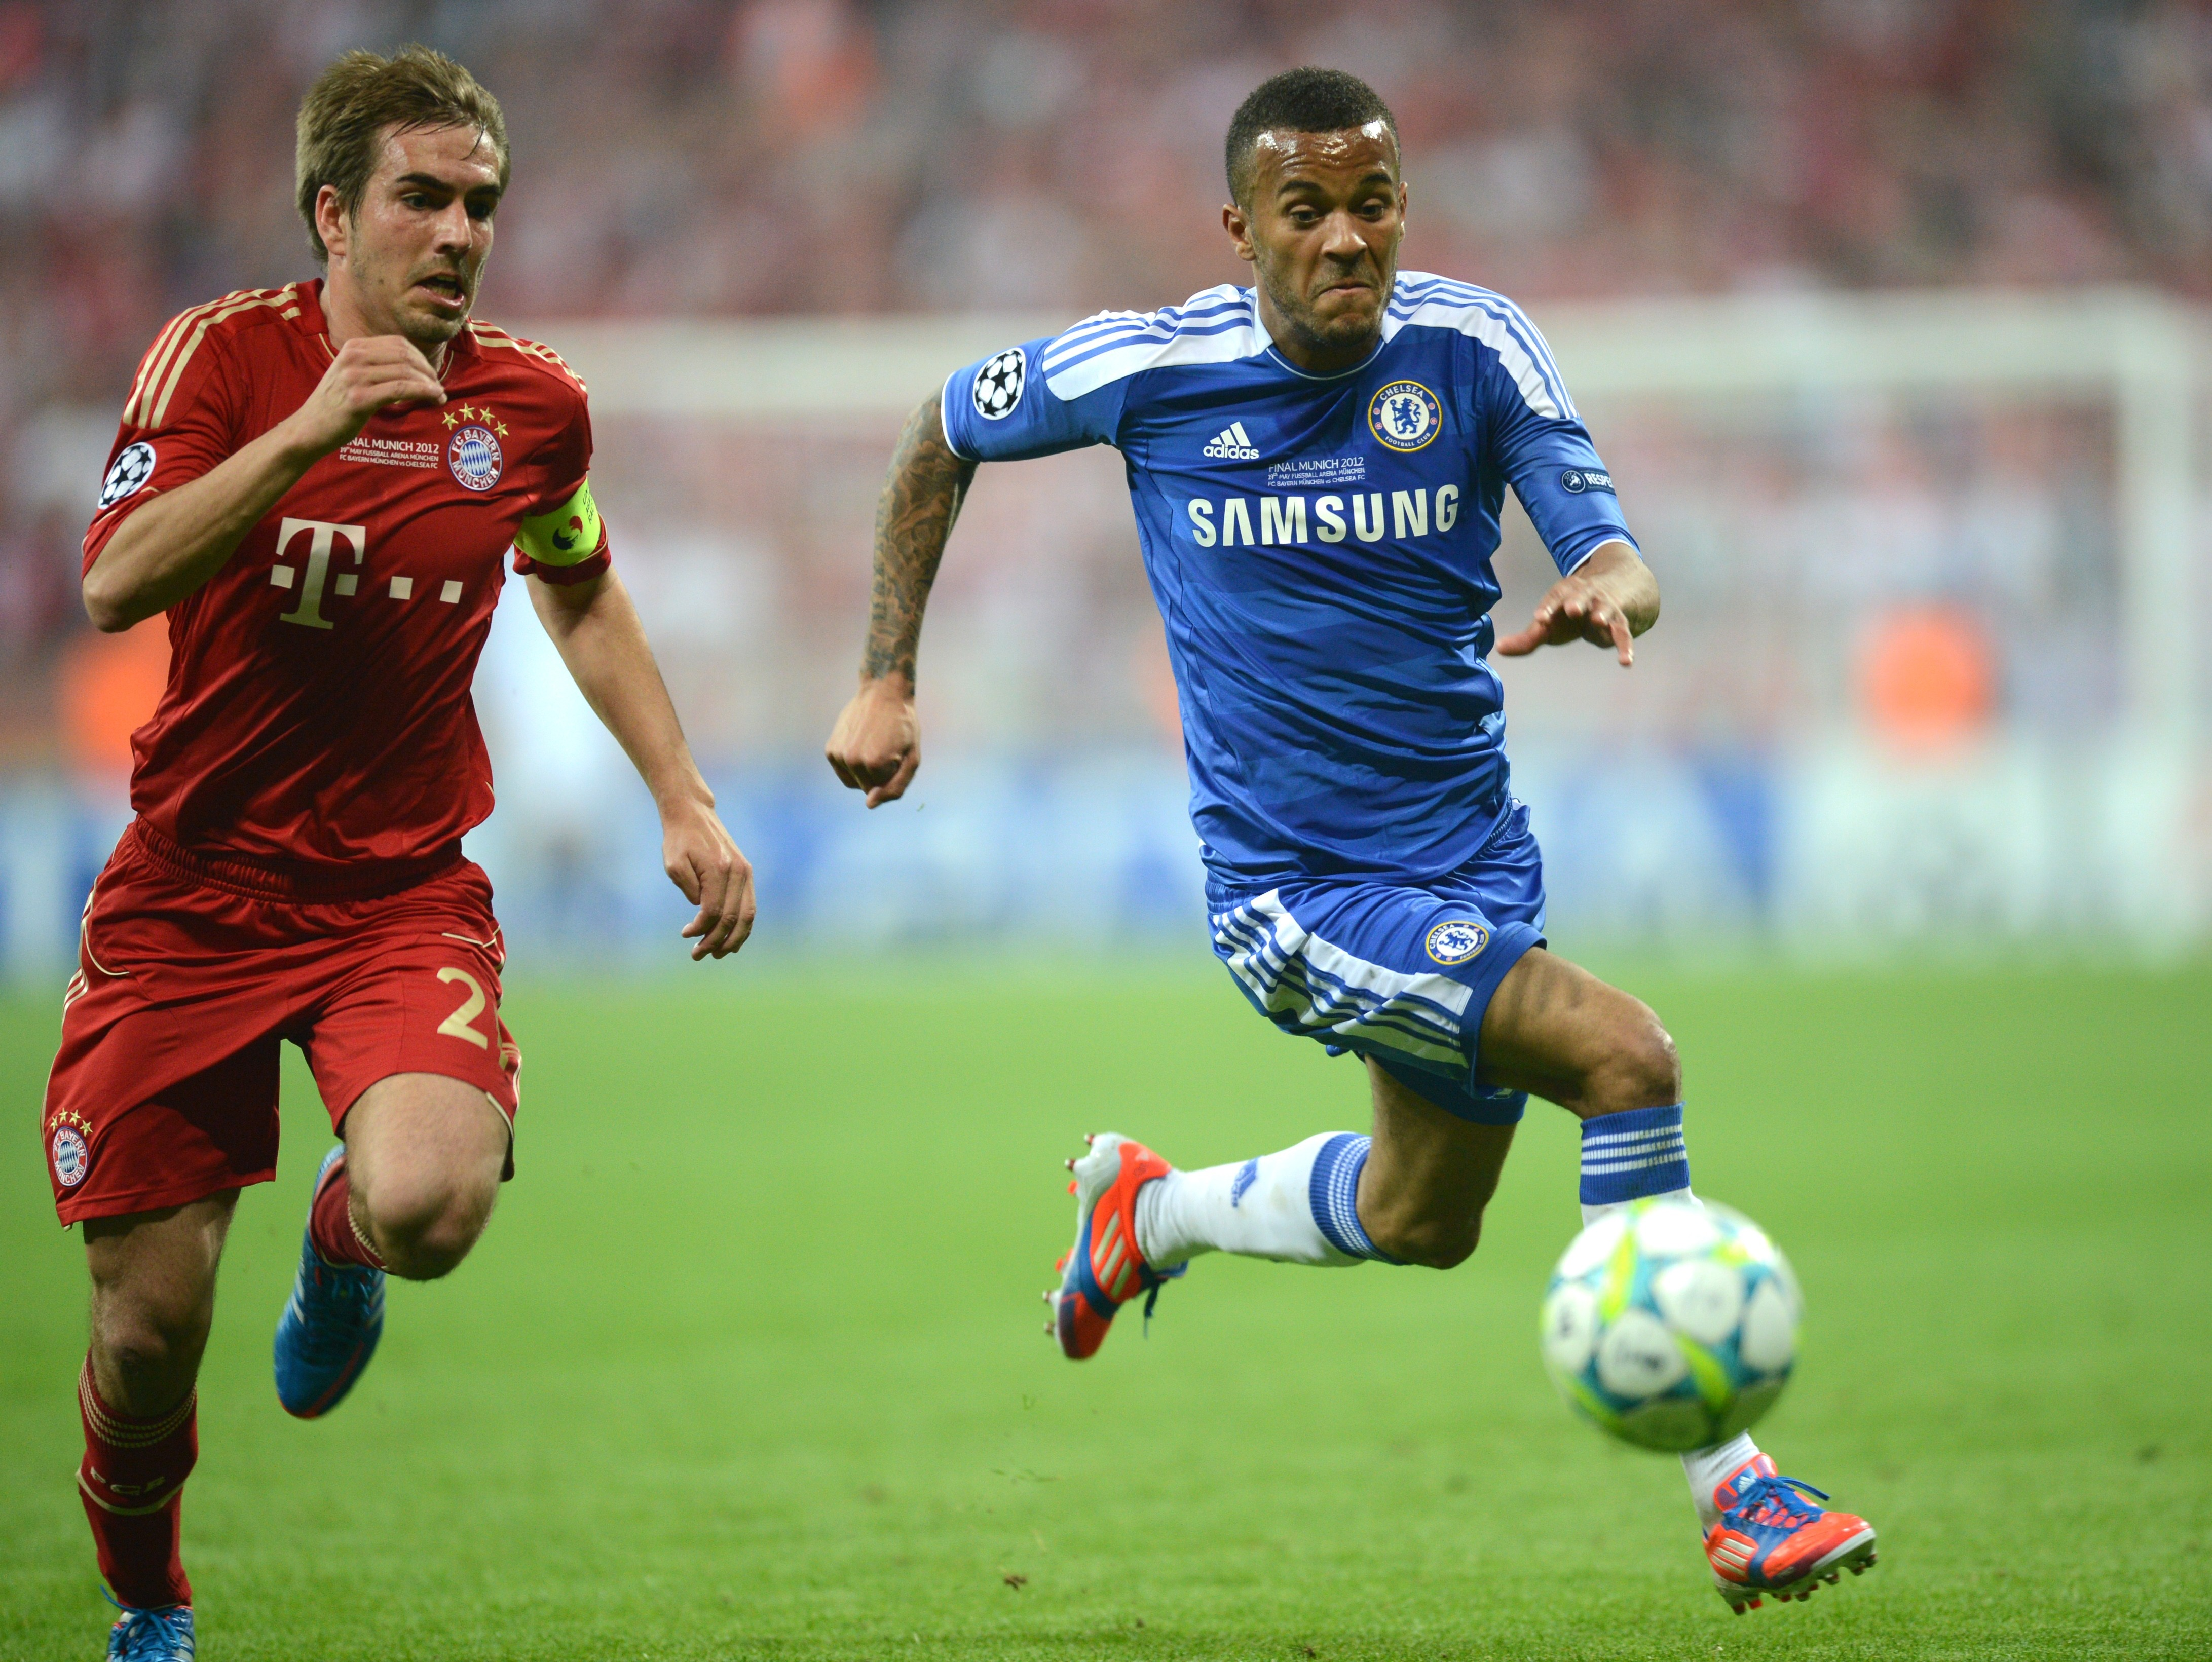 Ryan Bertrand vs Bayern Munich versatality